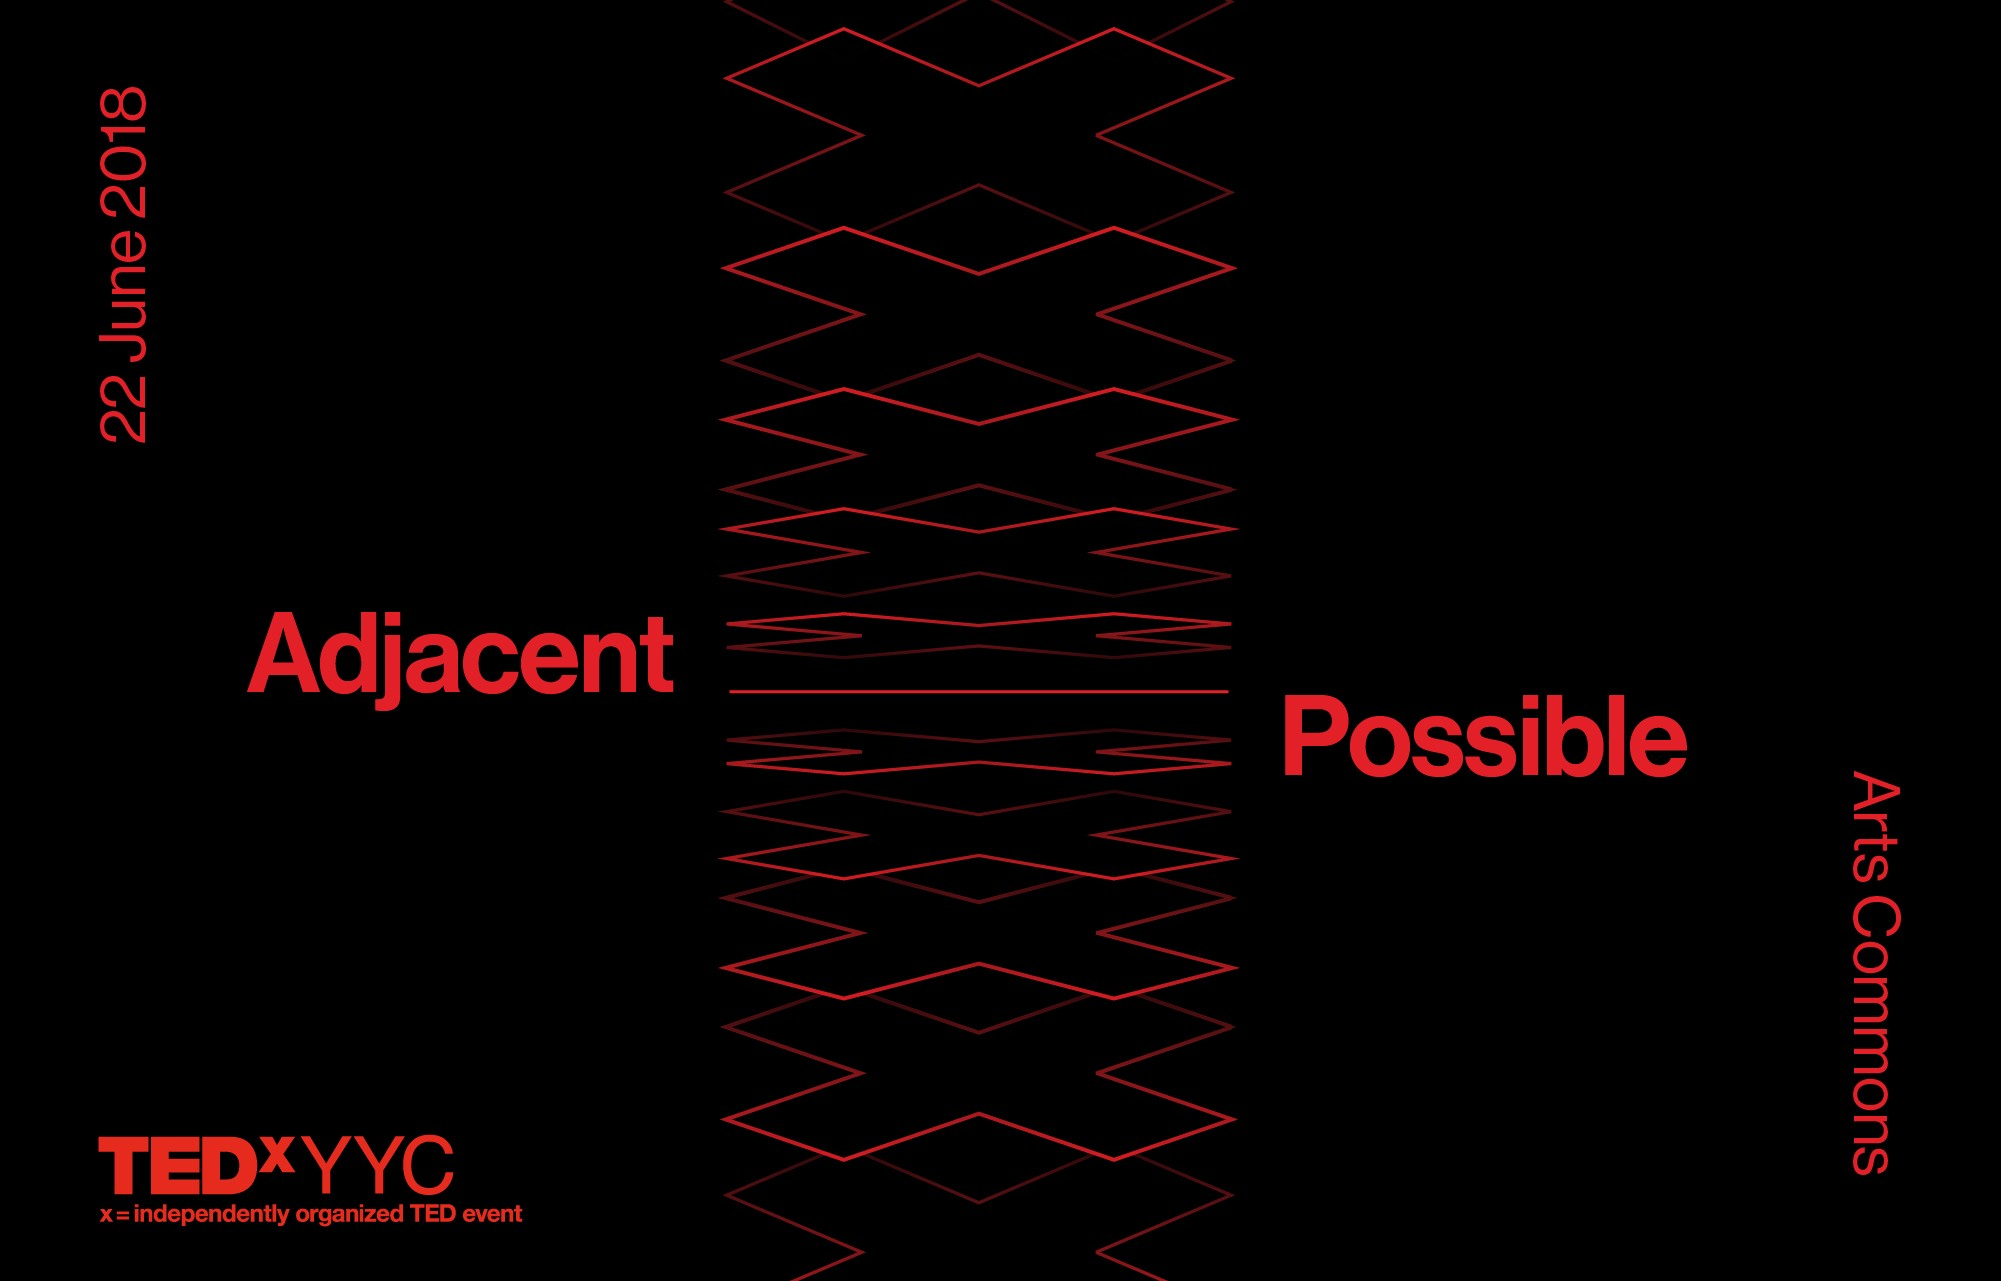 TEDxYYC 2018 Event Theme Announcement:  Adjacent Possible